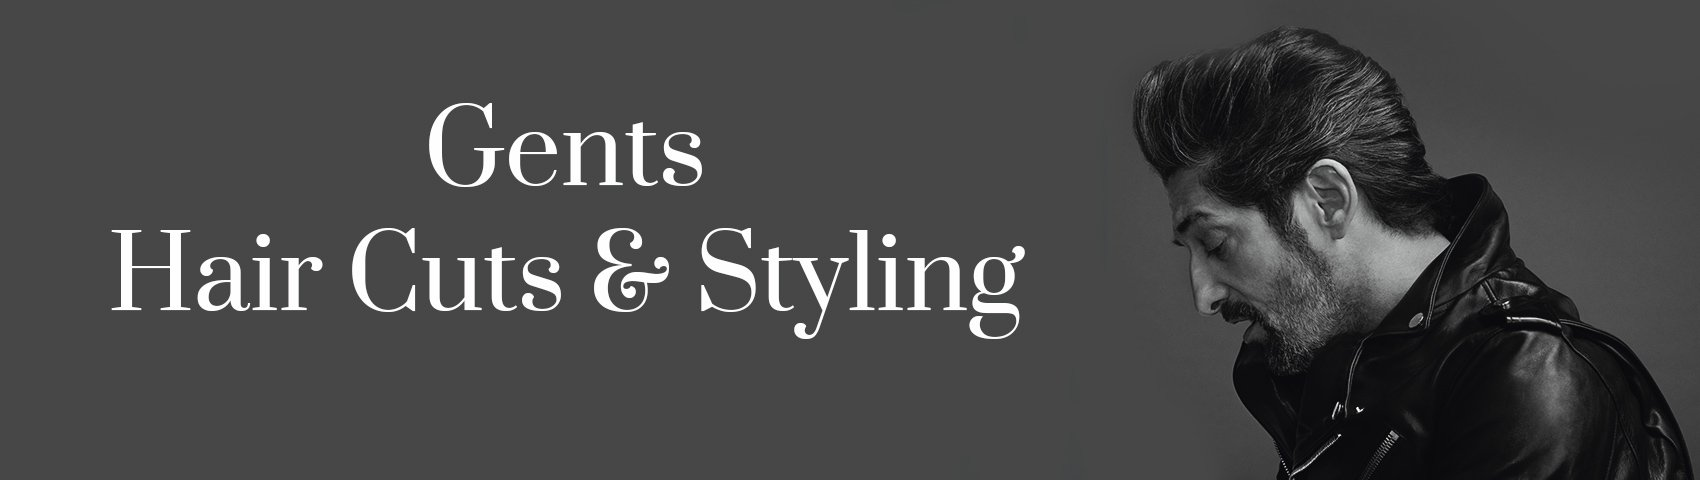 Gents Hair Cuts Styling BANNER